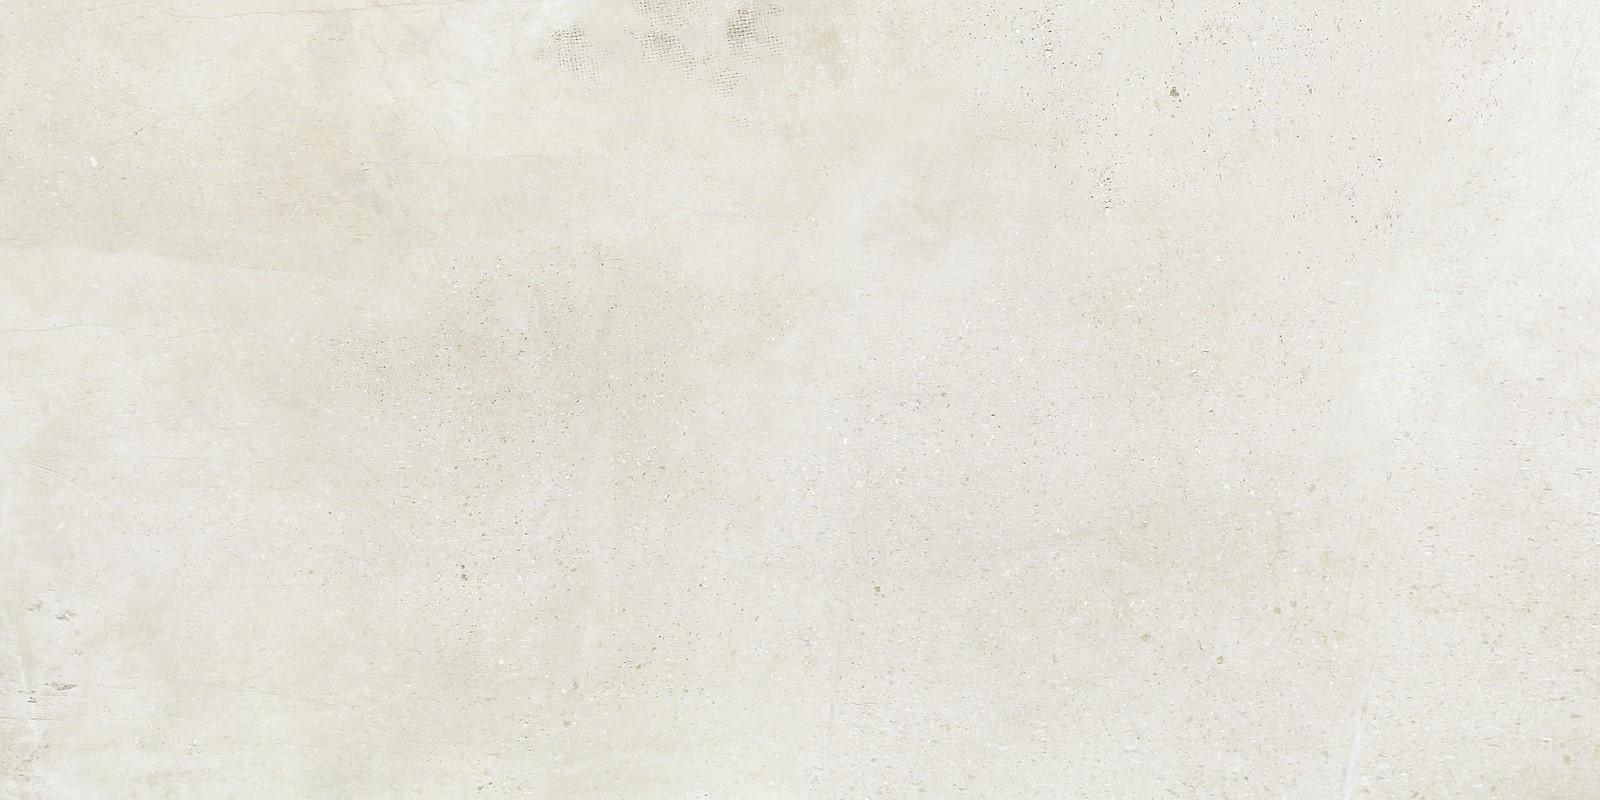 Overland ceramics skid bluestone tile flooring online for bathroom